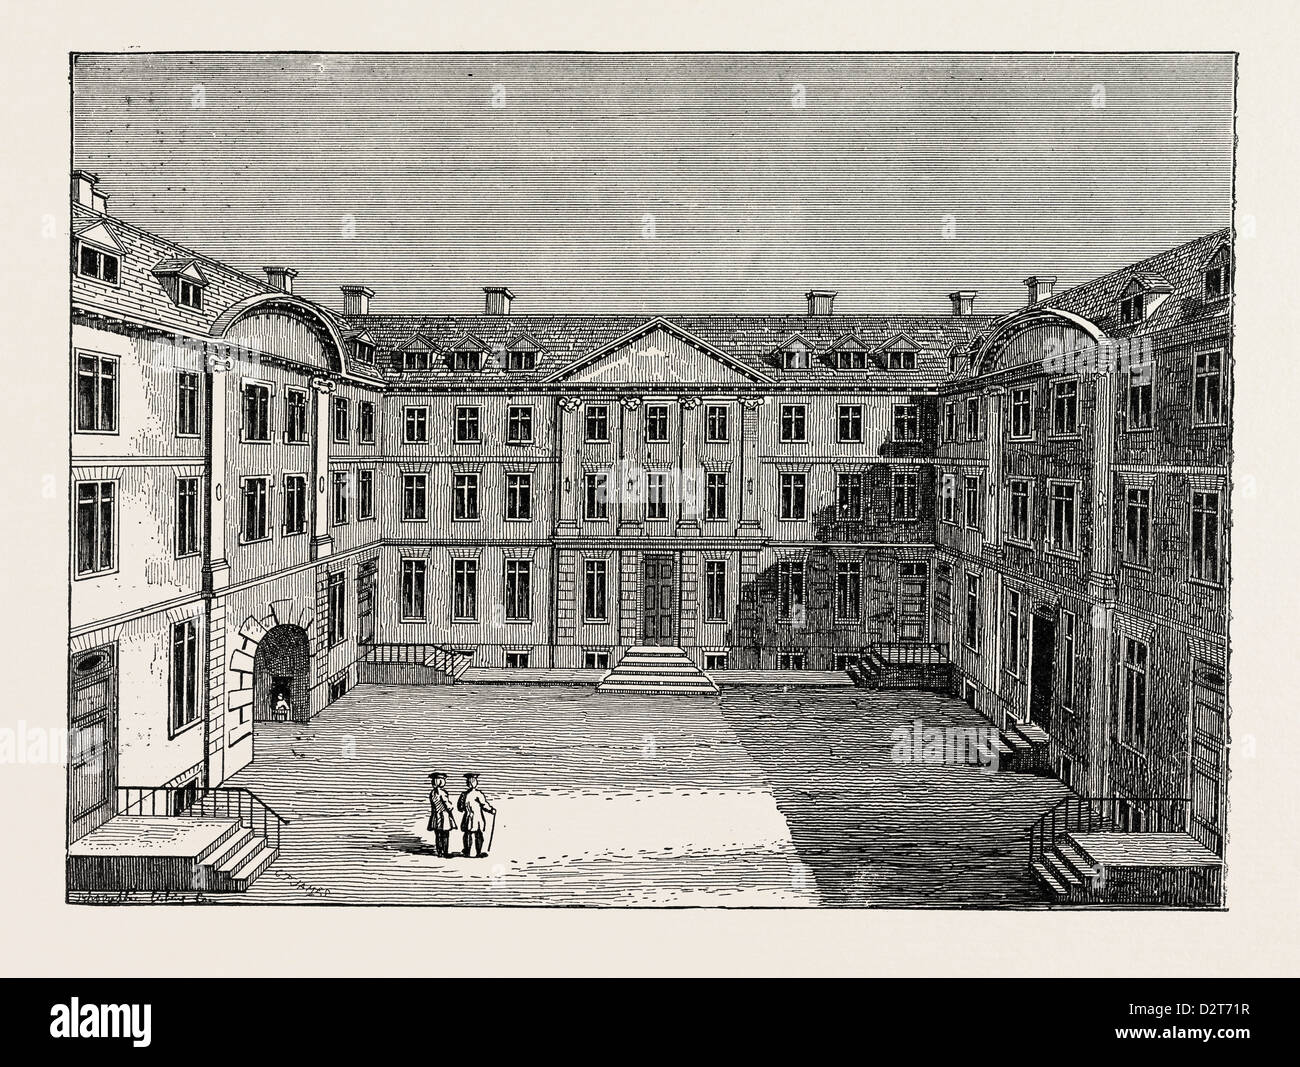 HERALDS' COLLEGE ABOUT 1700 LONDON - Stock Image